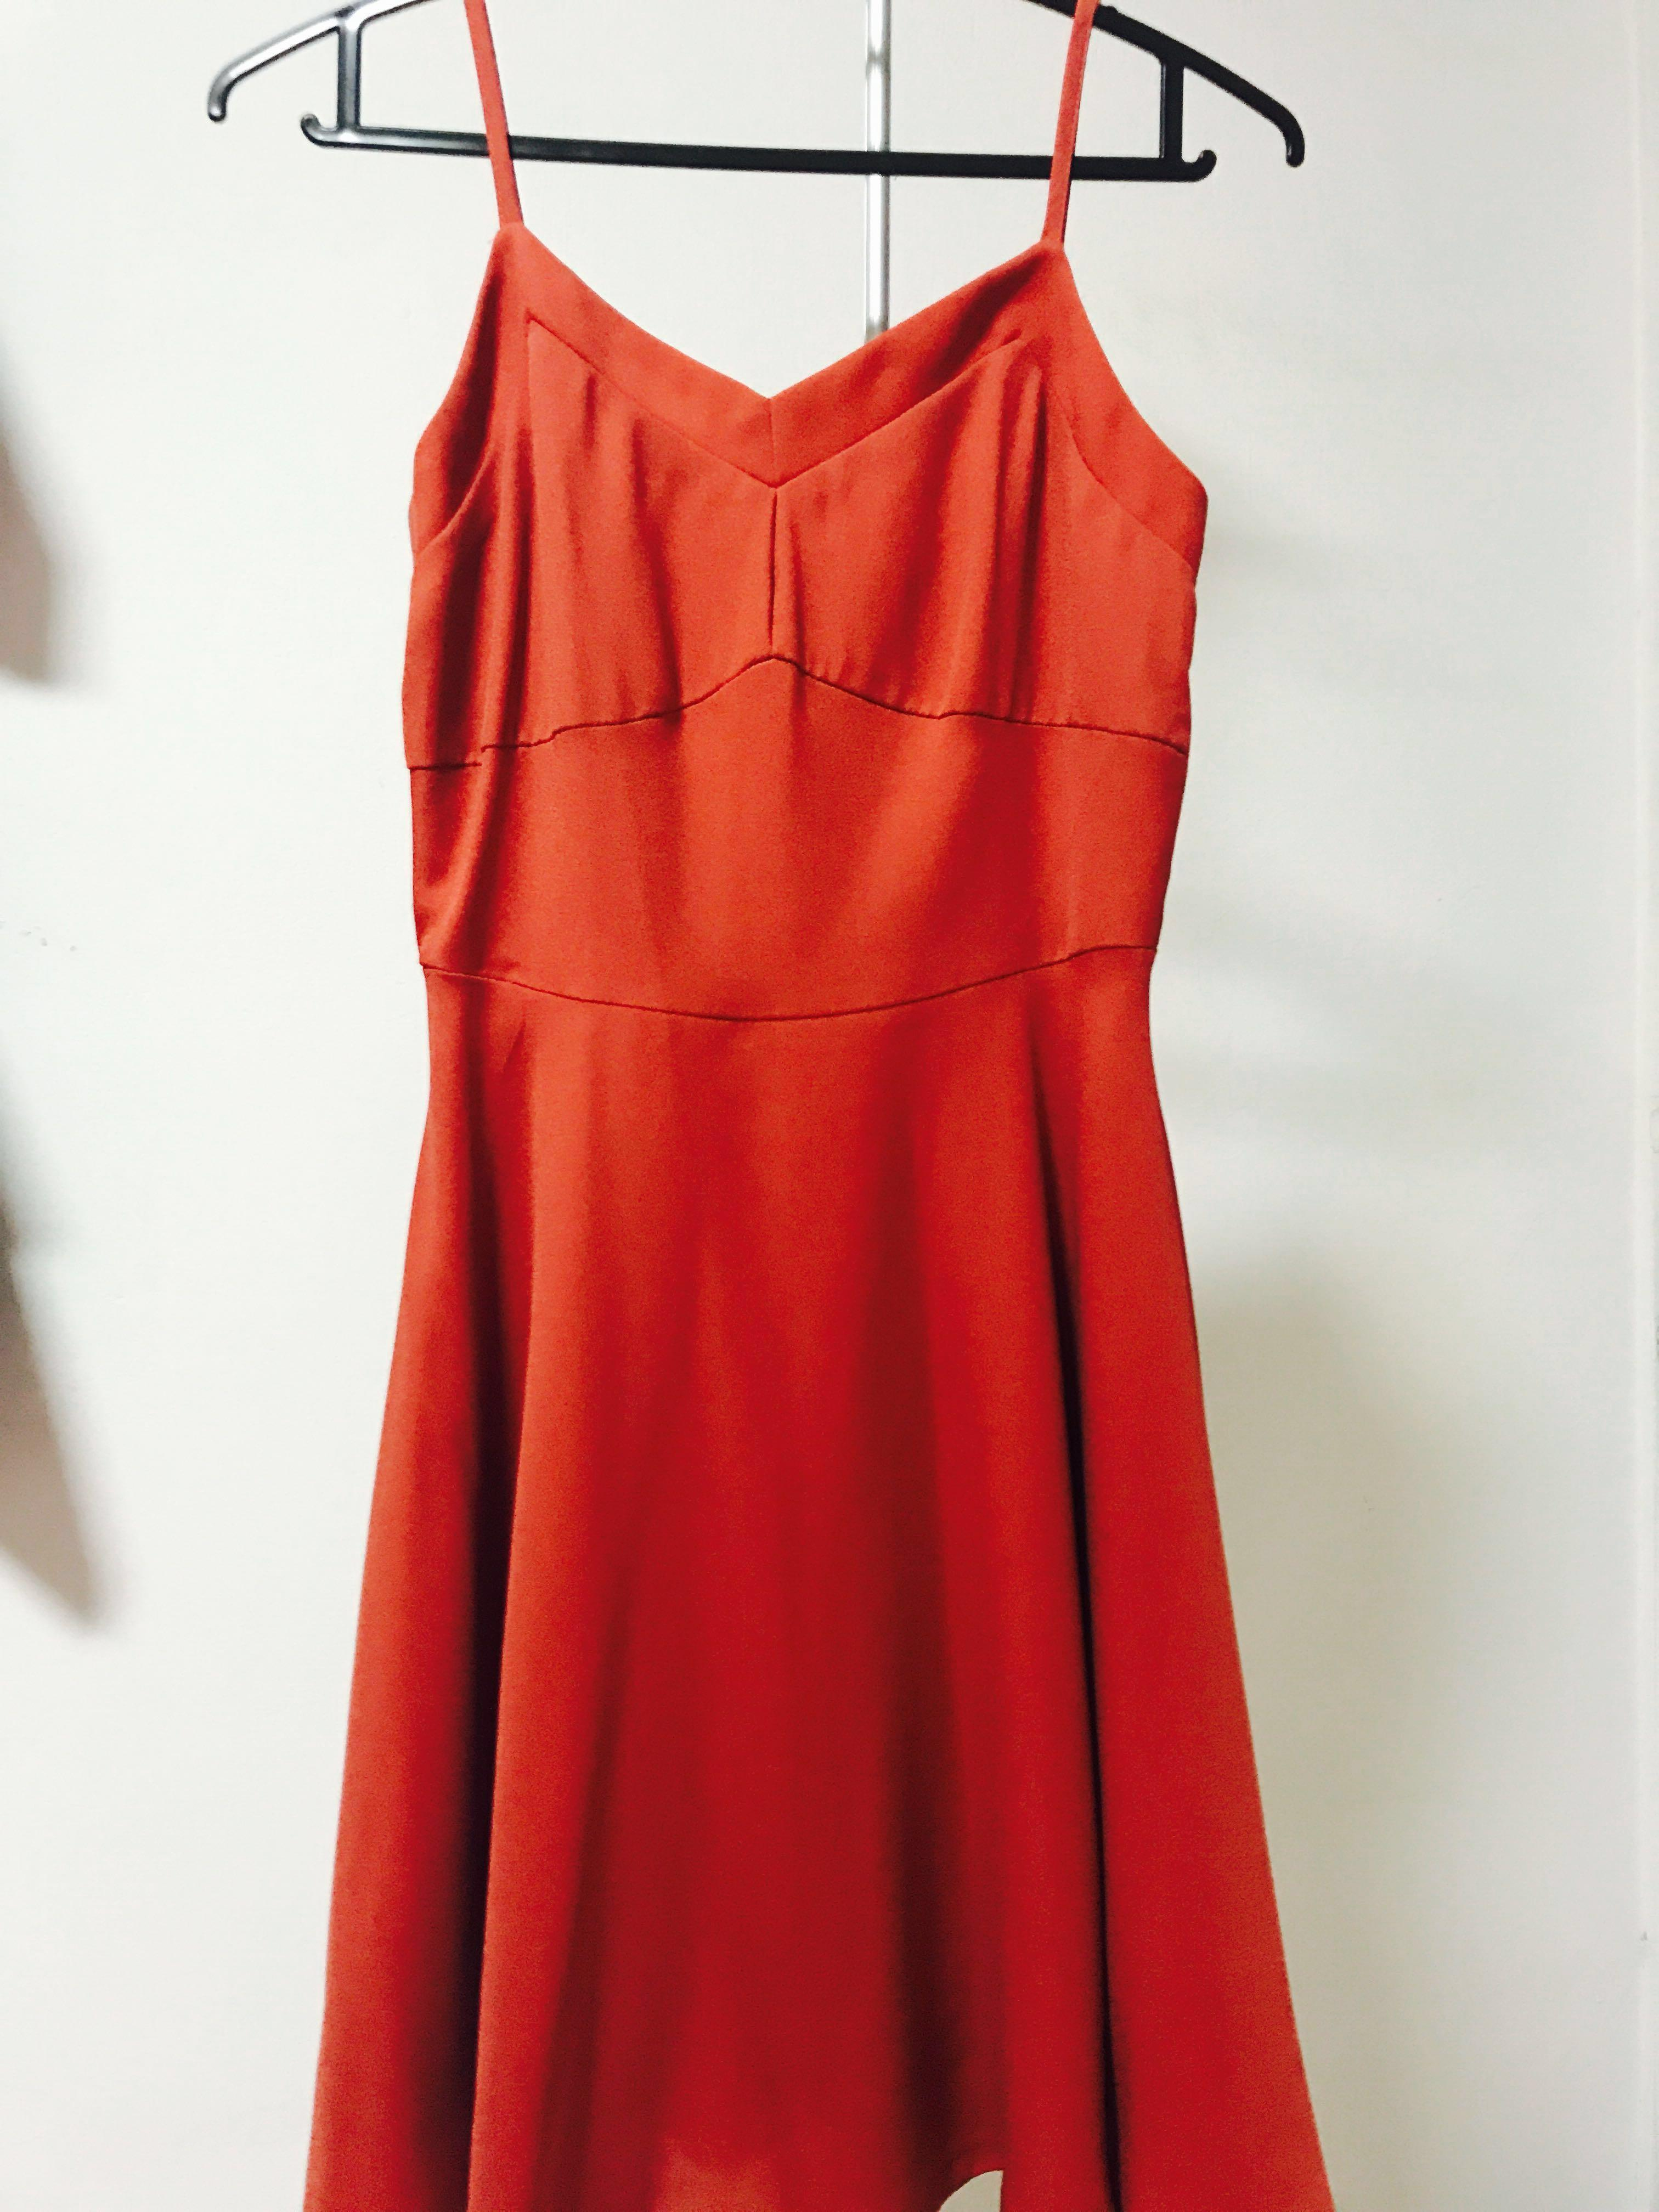 The Stage Walk Flare dress